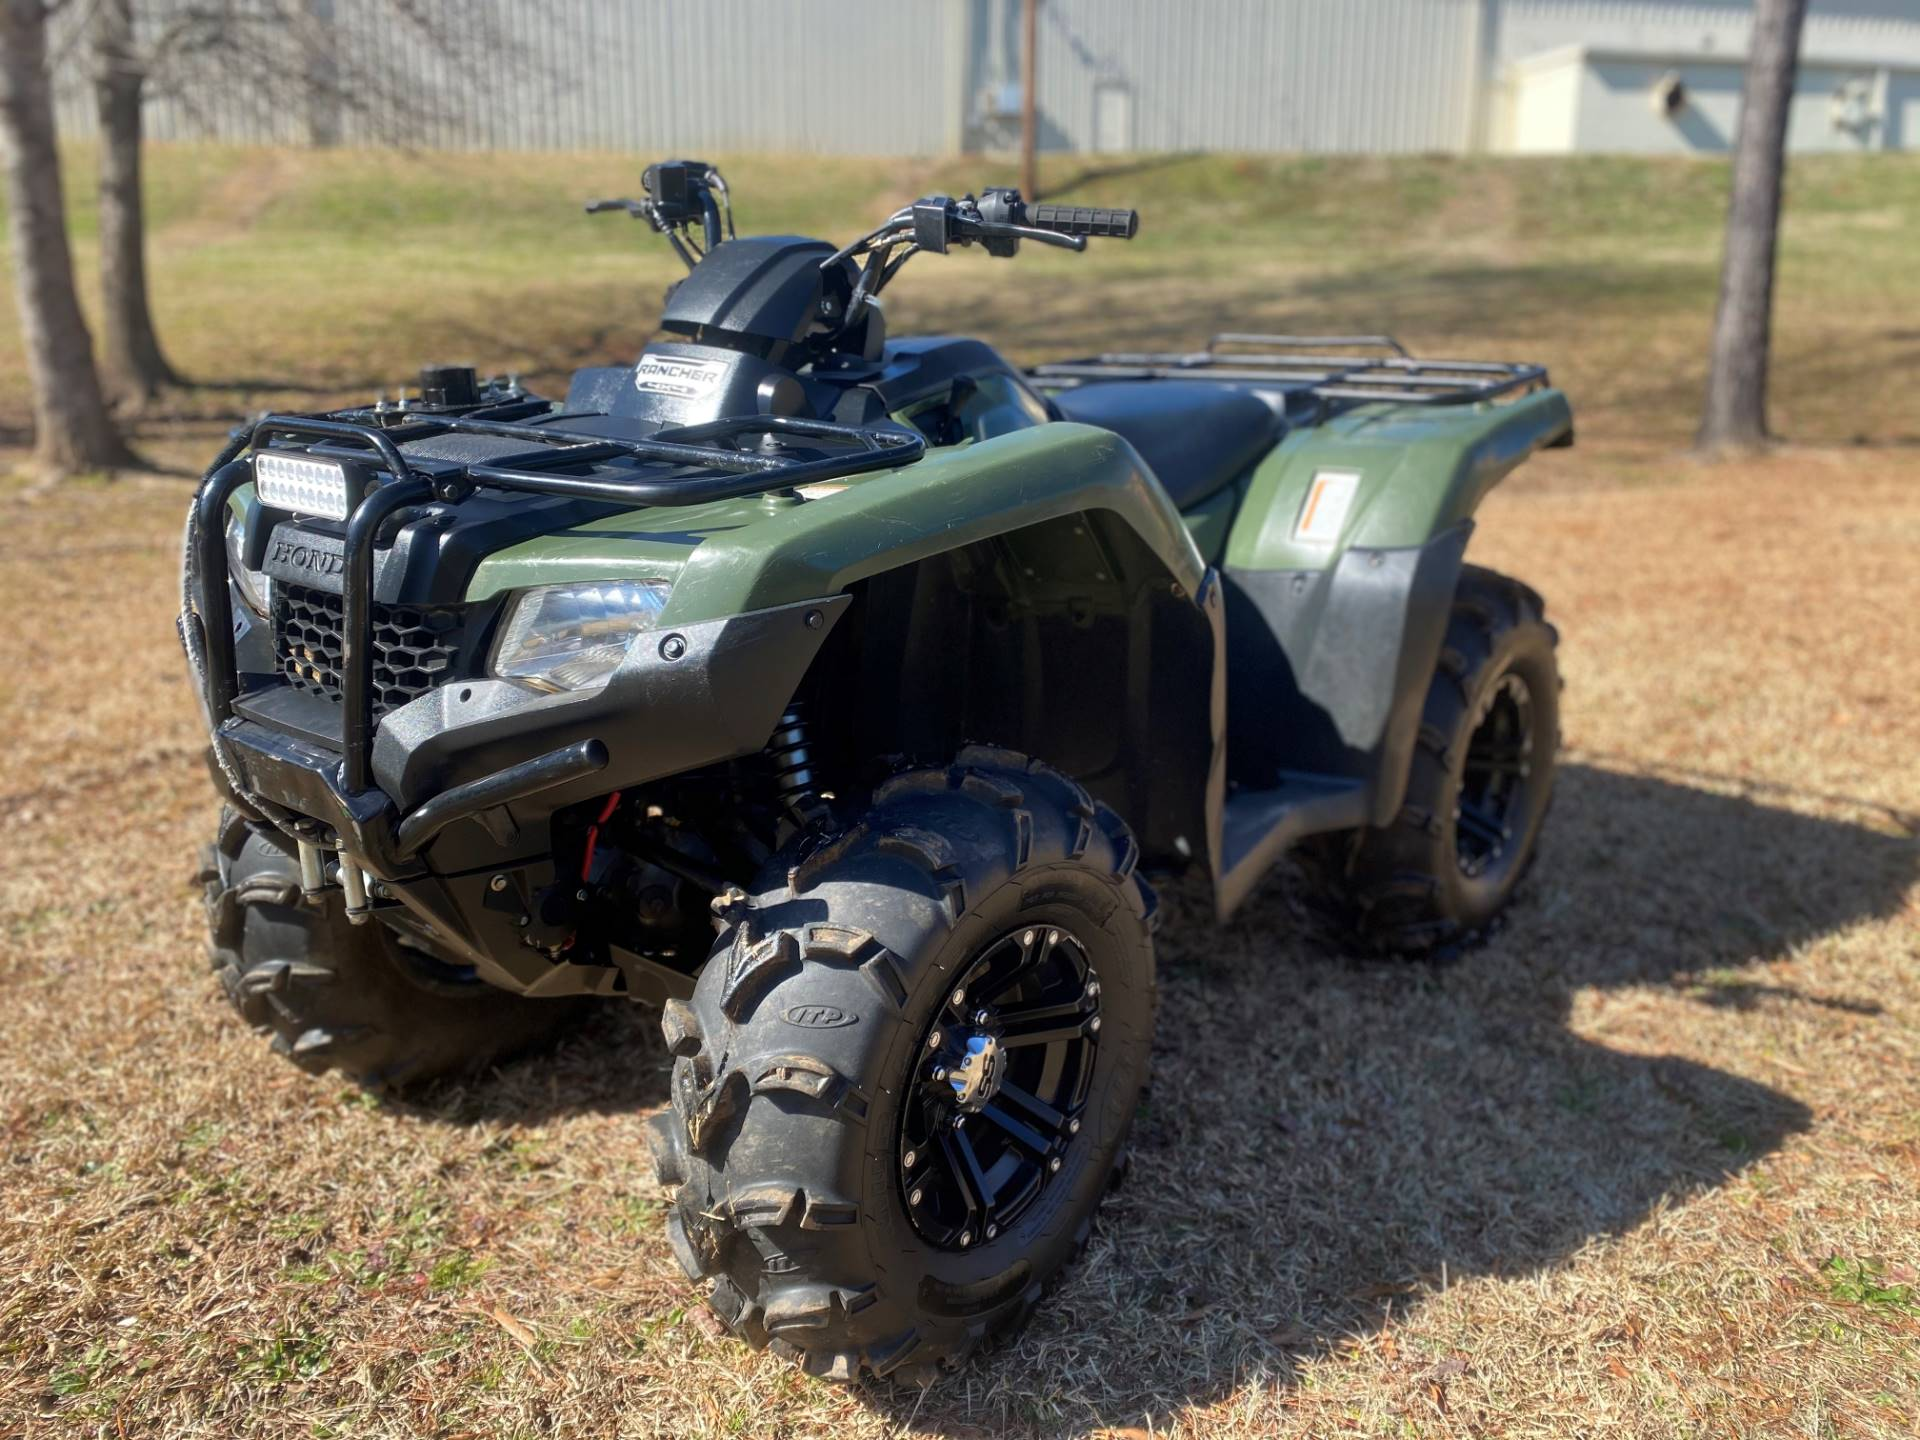 2019 Honda FourTrax Rancher 4x4 in Greer, South Carolina - Photo 3